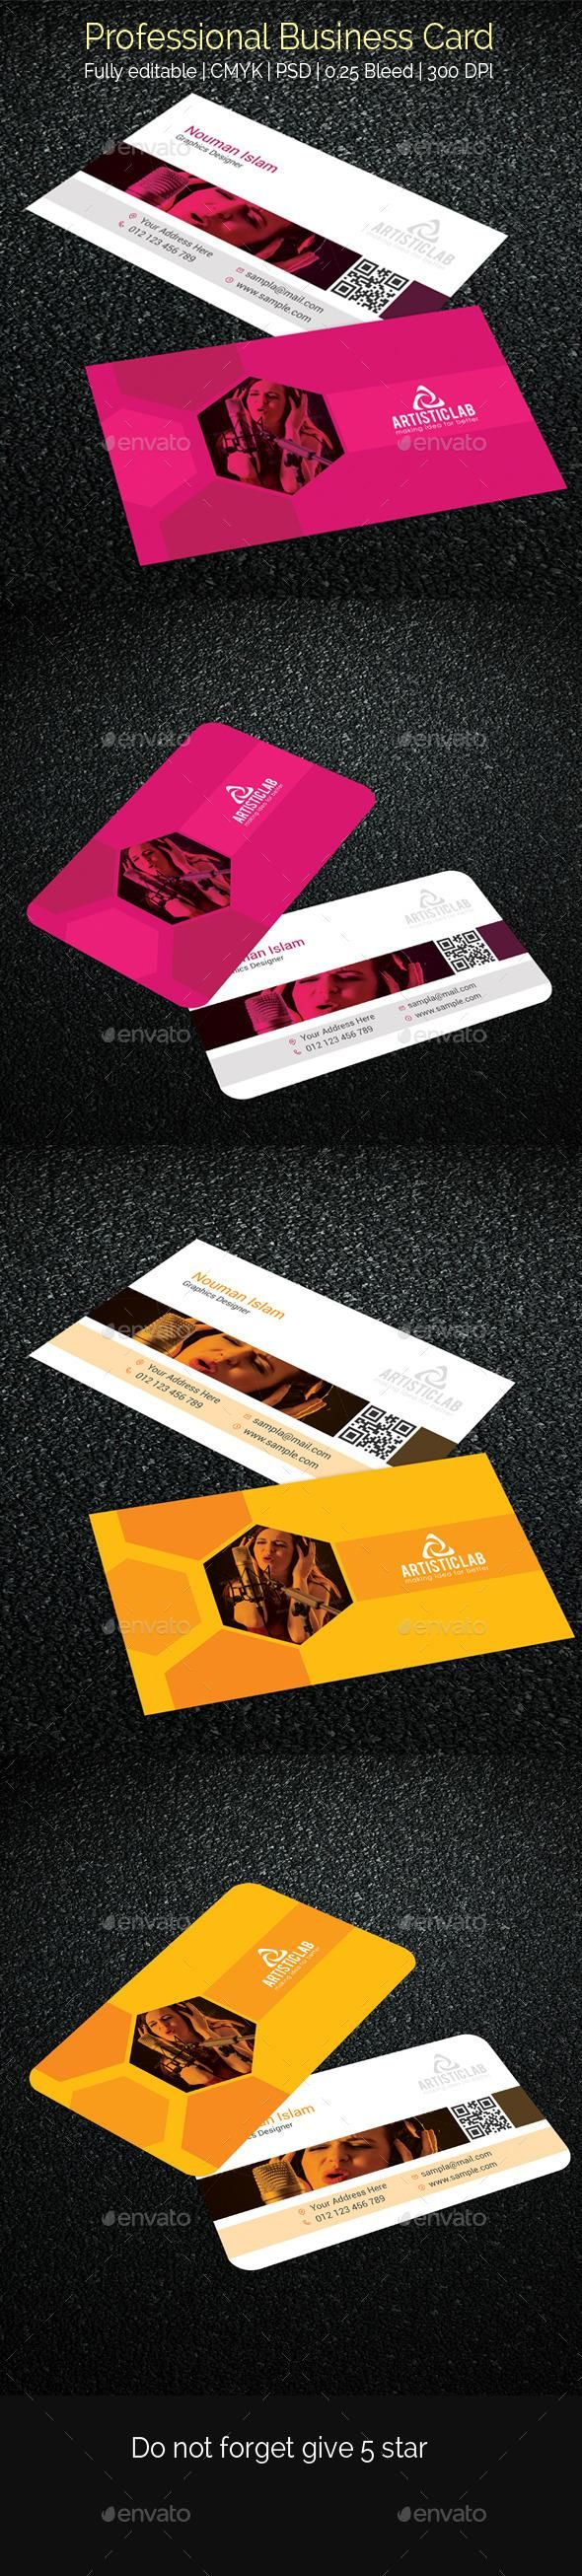 Best Professional Business Cards Ideas On Pinterest Gold - Professional business card template